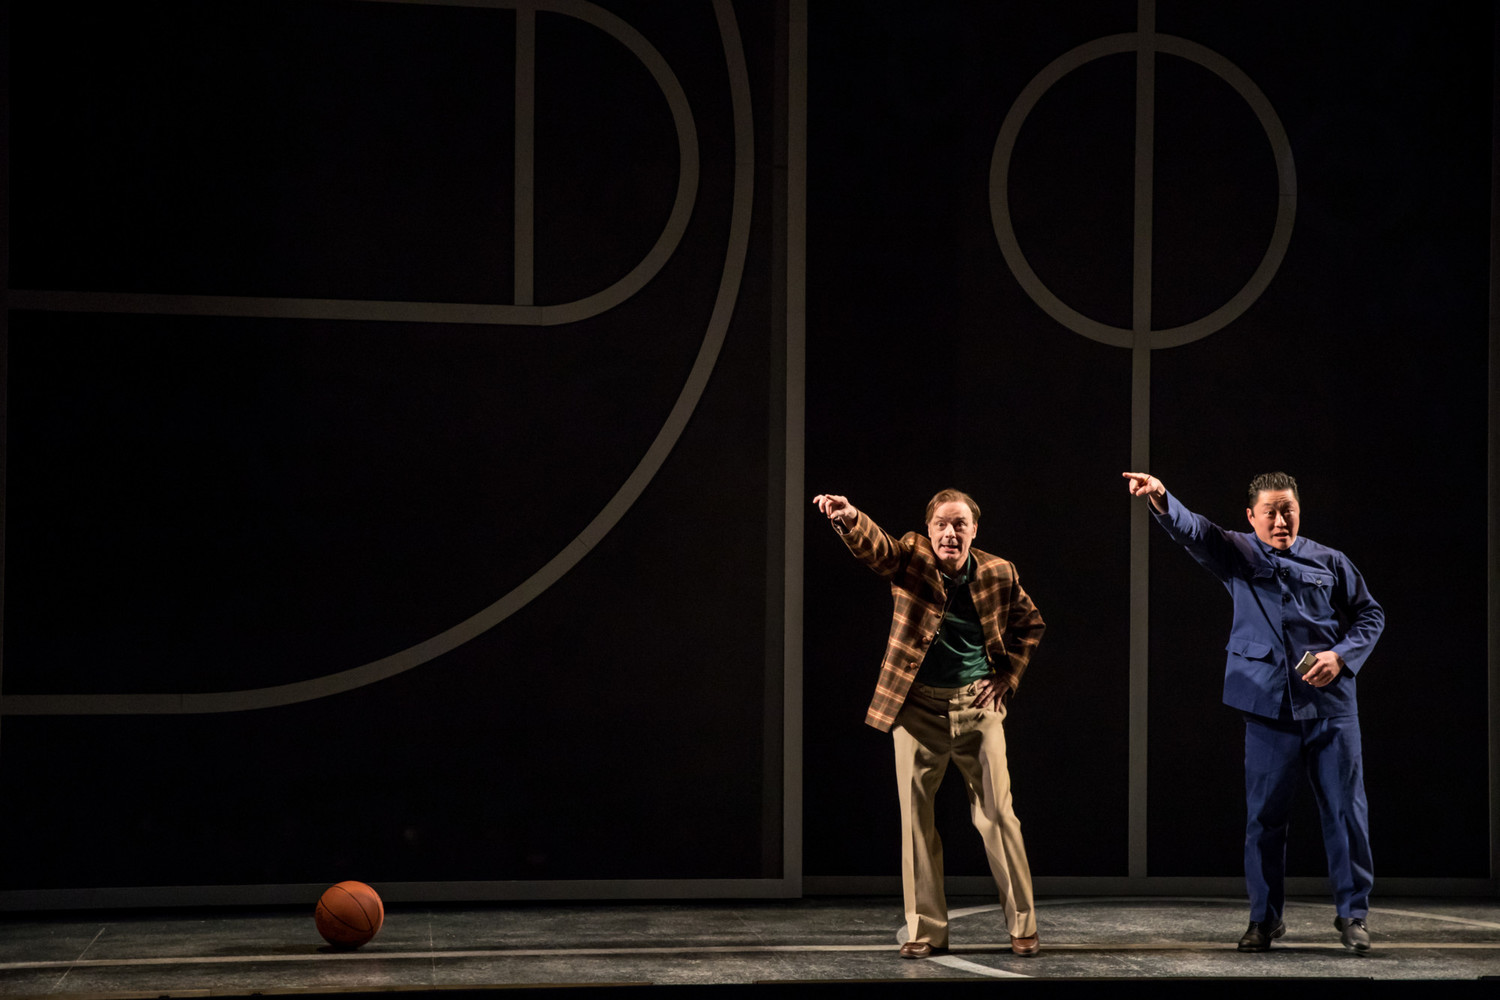 BWW Review: THE GREAT LEAP Just Misses at Guthrie Theater